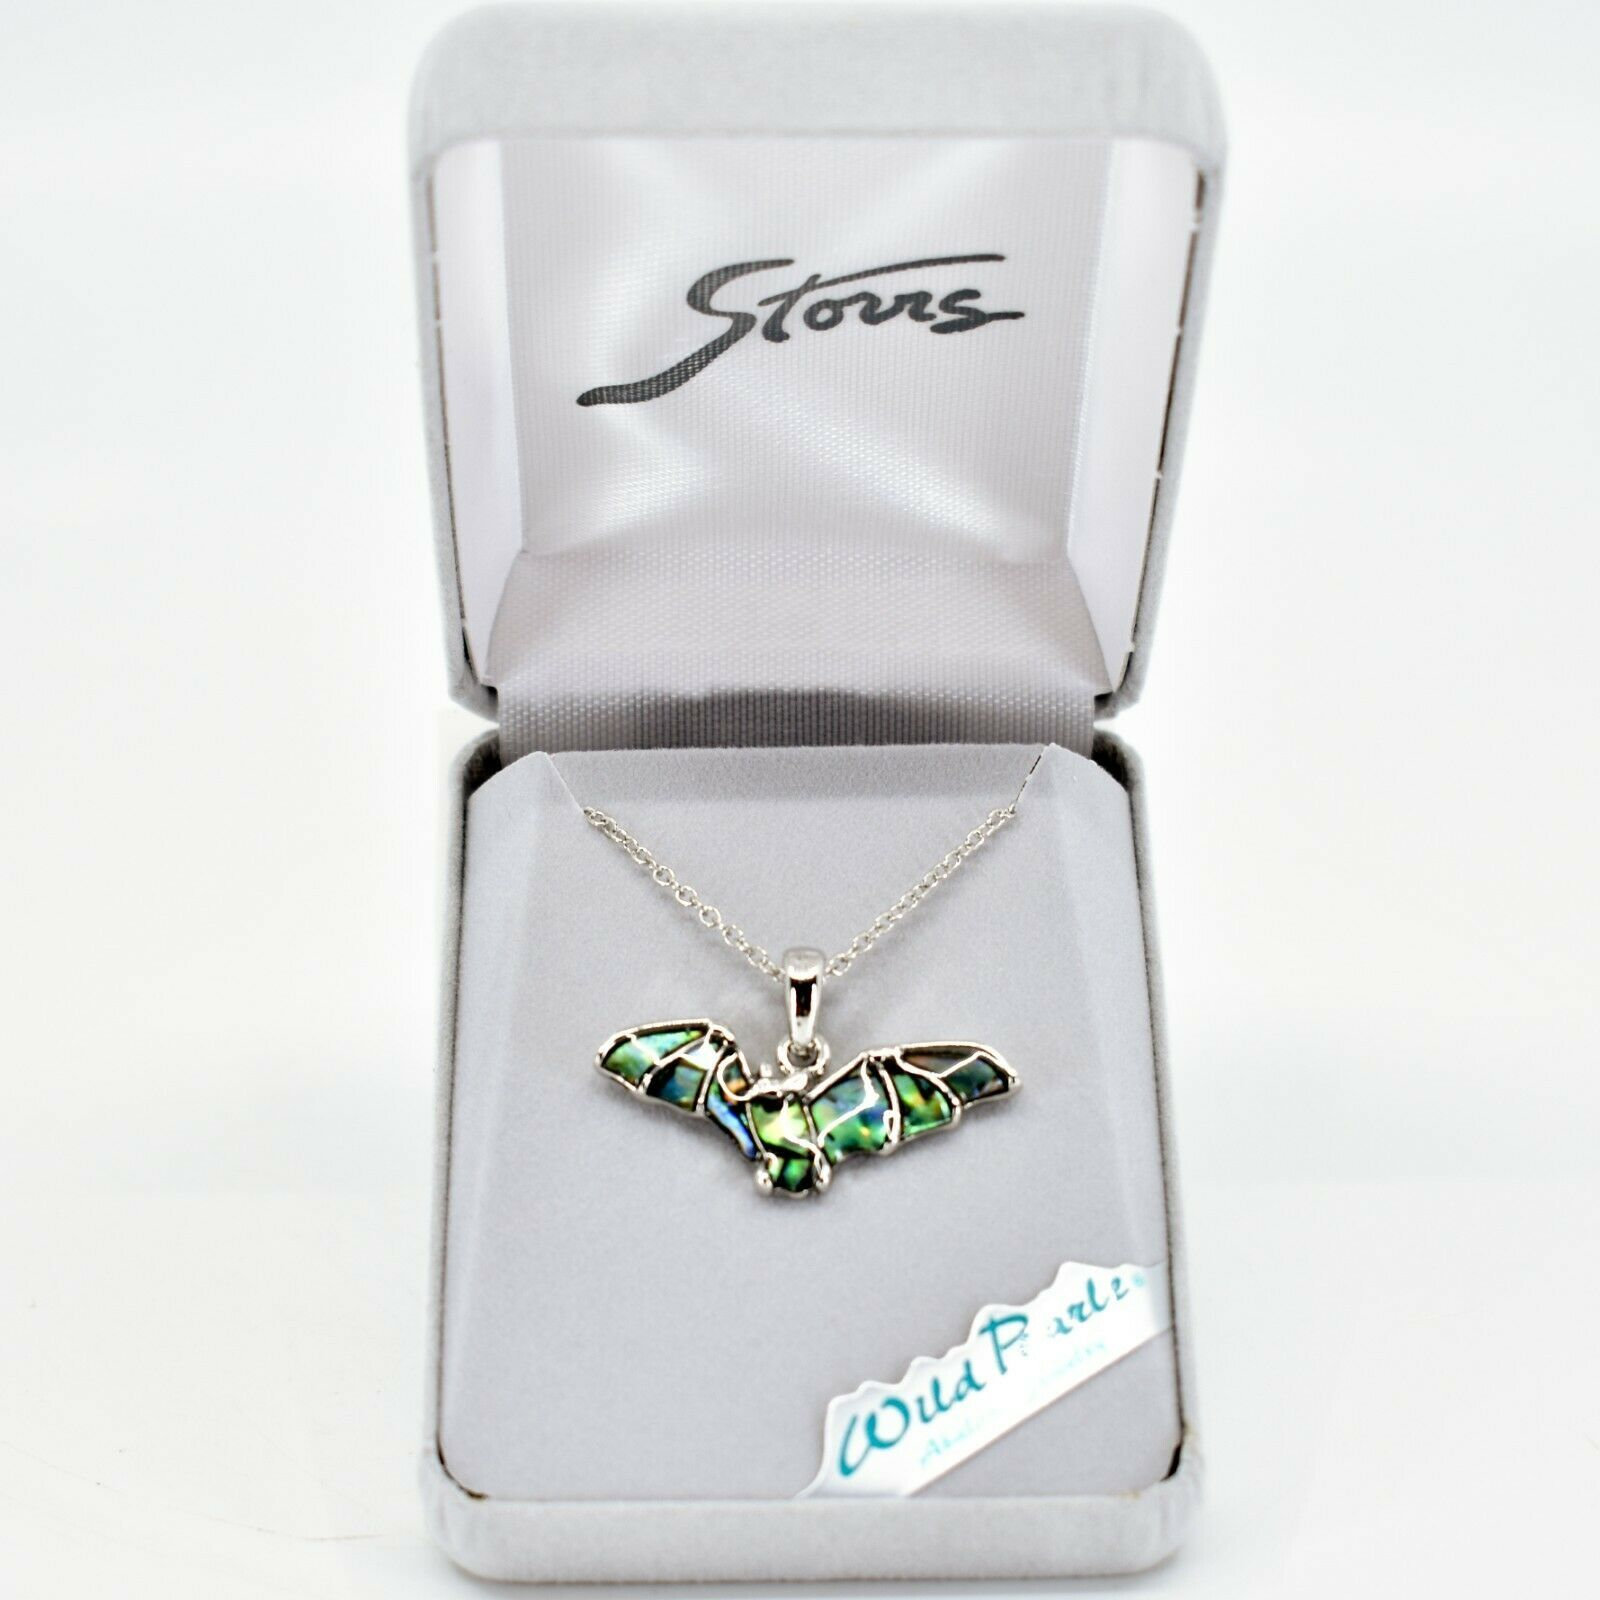 Storrs Wild Pearle Abalone Shell Flying Bat Pendant w/ Silver Tone Necklace